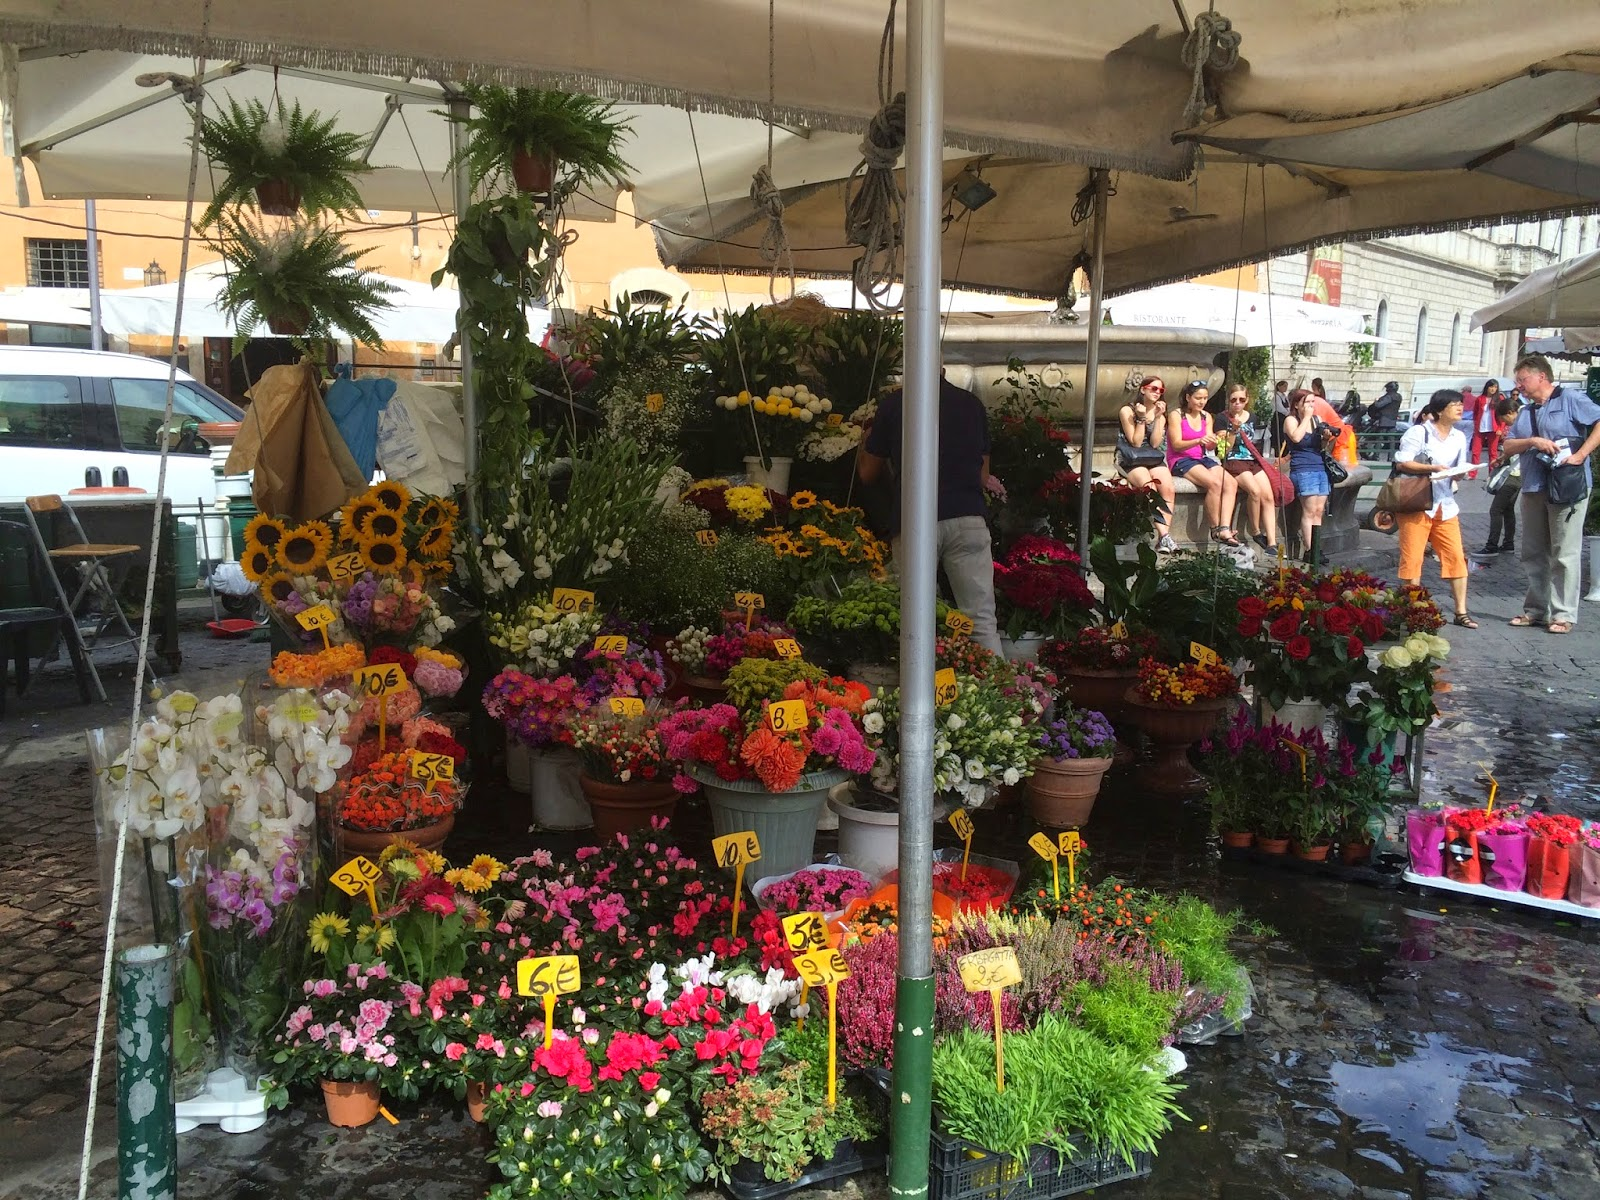 5-Things-I-Adore-About-Rome-Campo-Di-Fiori-Market